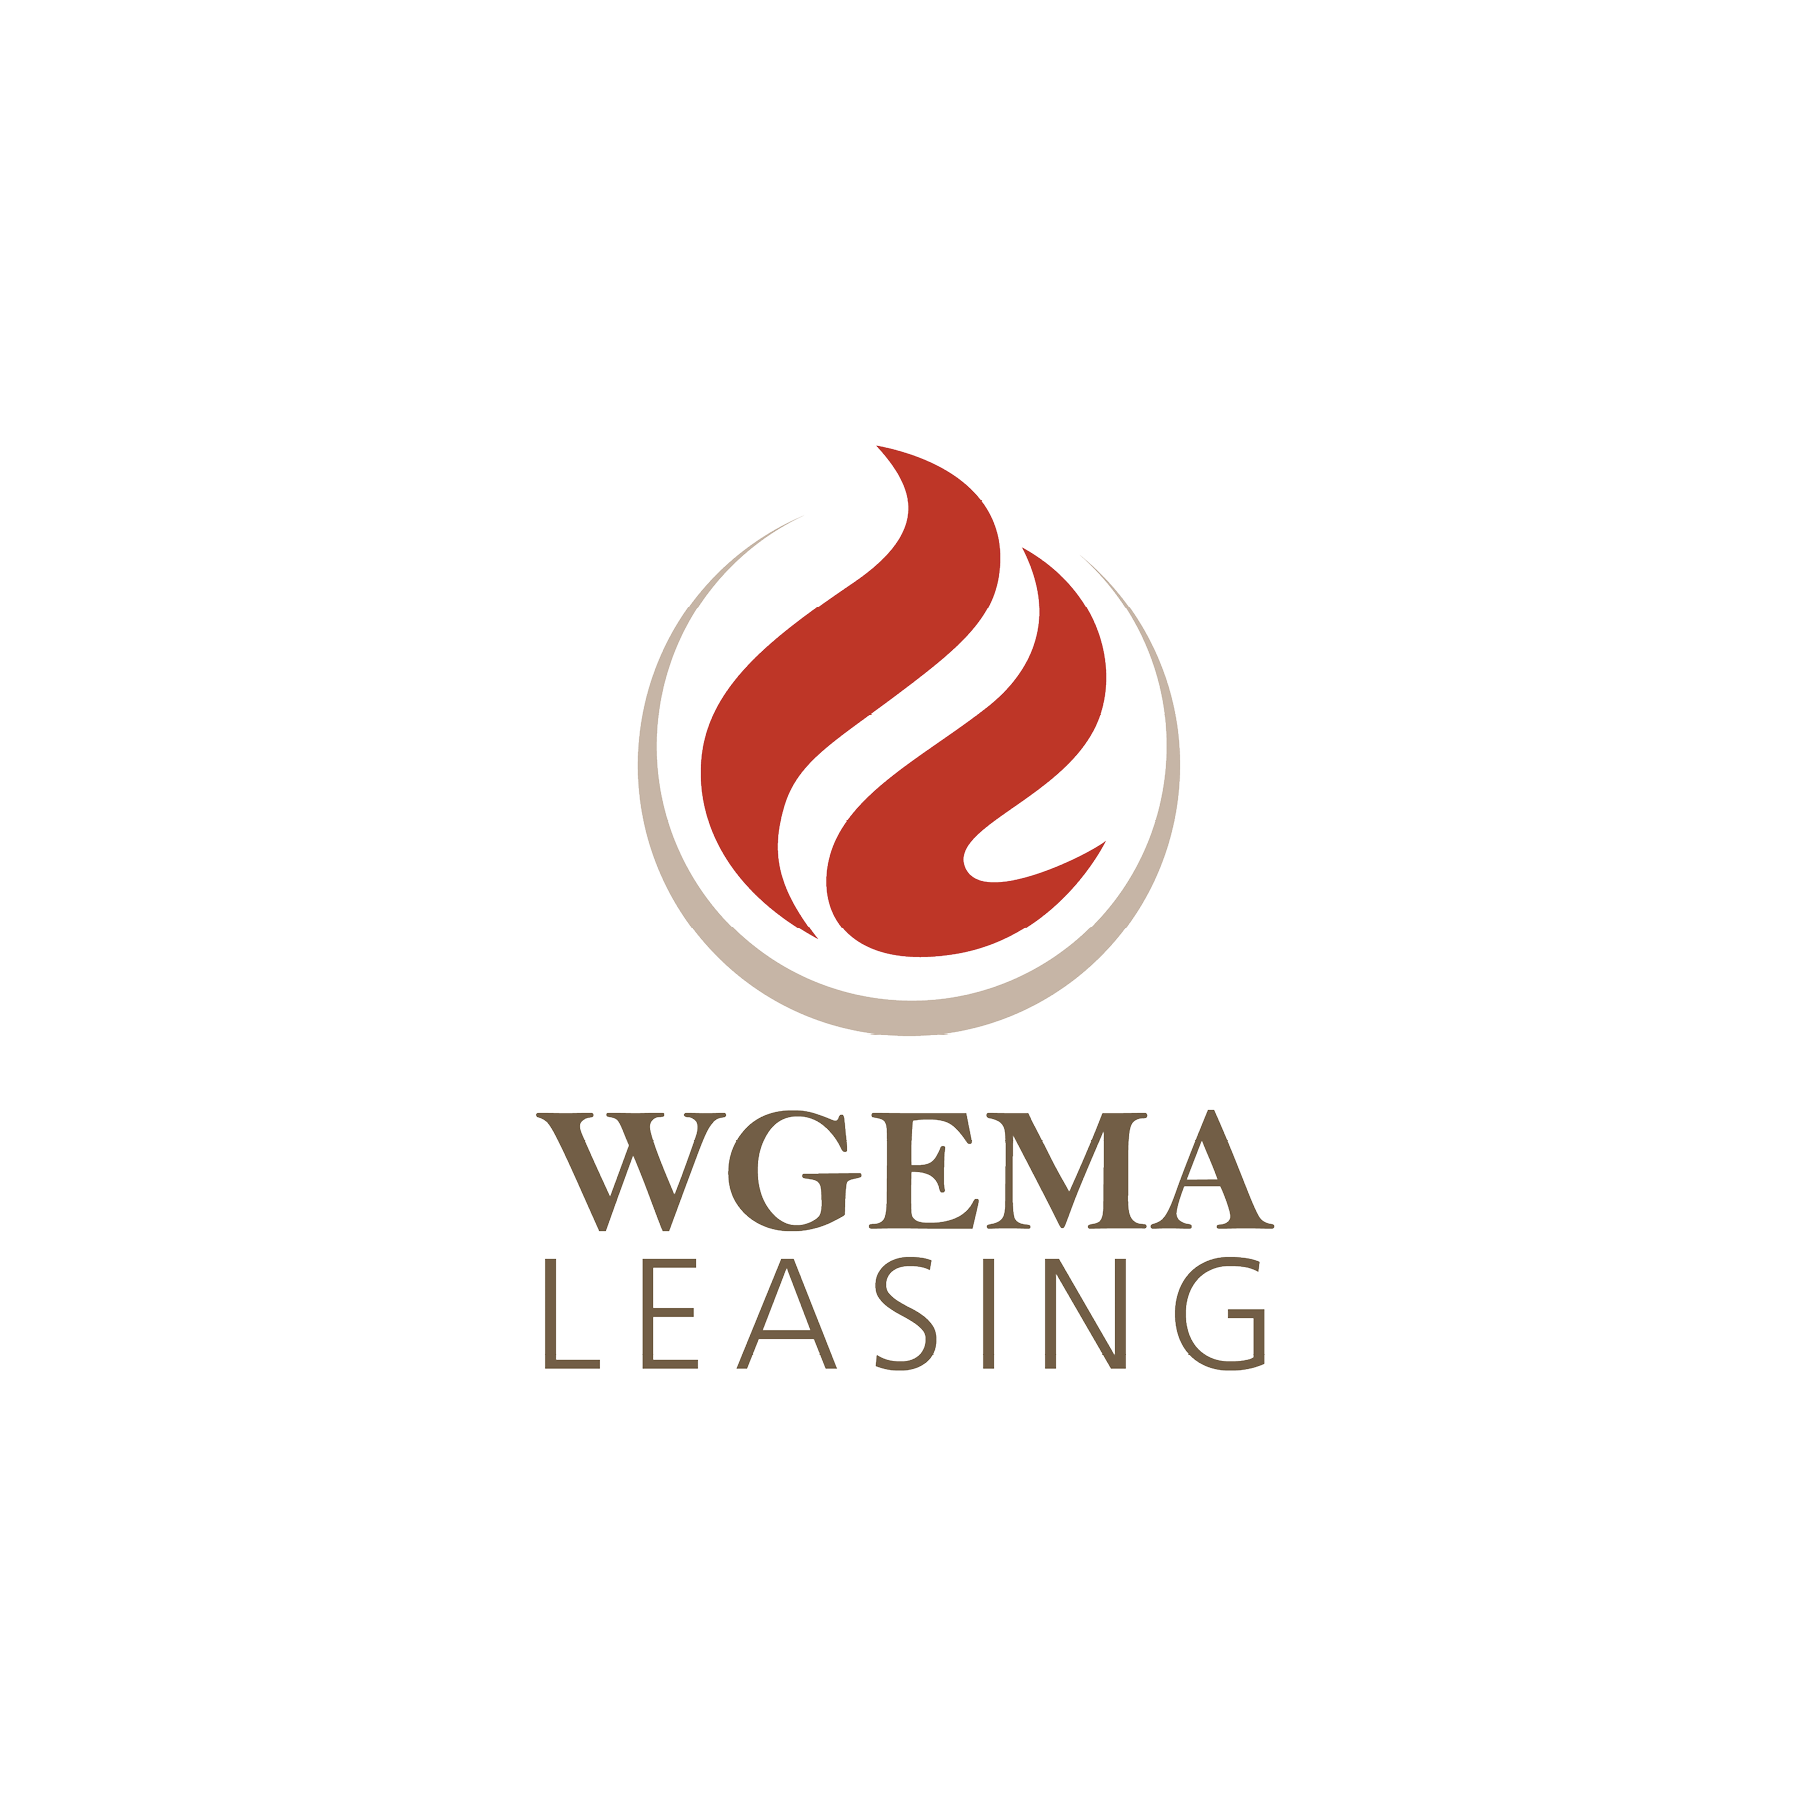 Wgema Leasing is the company that manages the operations and development of the 14-acre Wgema Campus in Milwaukee, WI. The property includes 368,736 square feet of built environment, with $54 million of insured value.